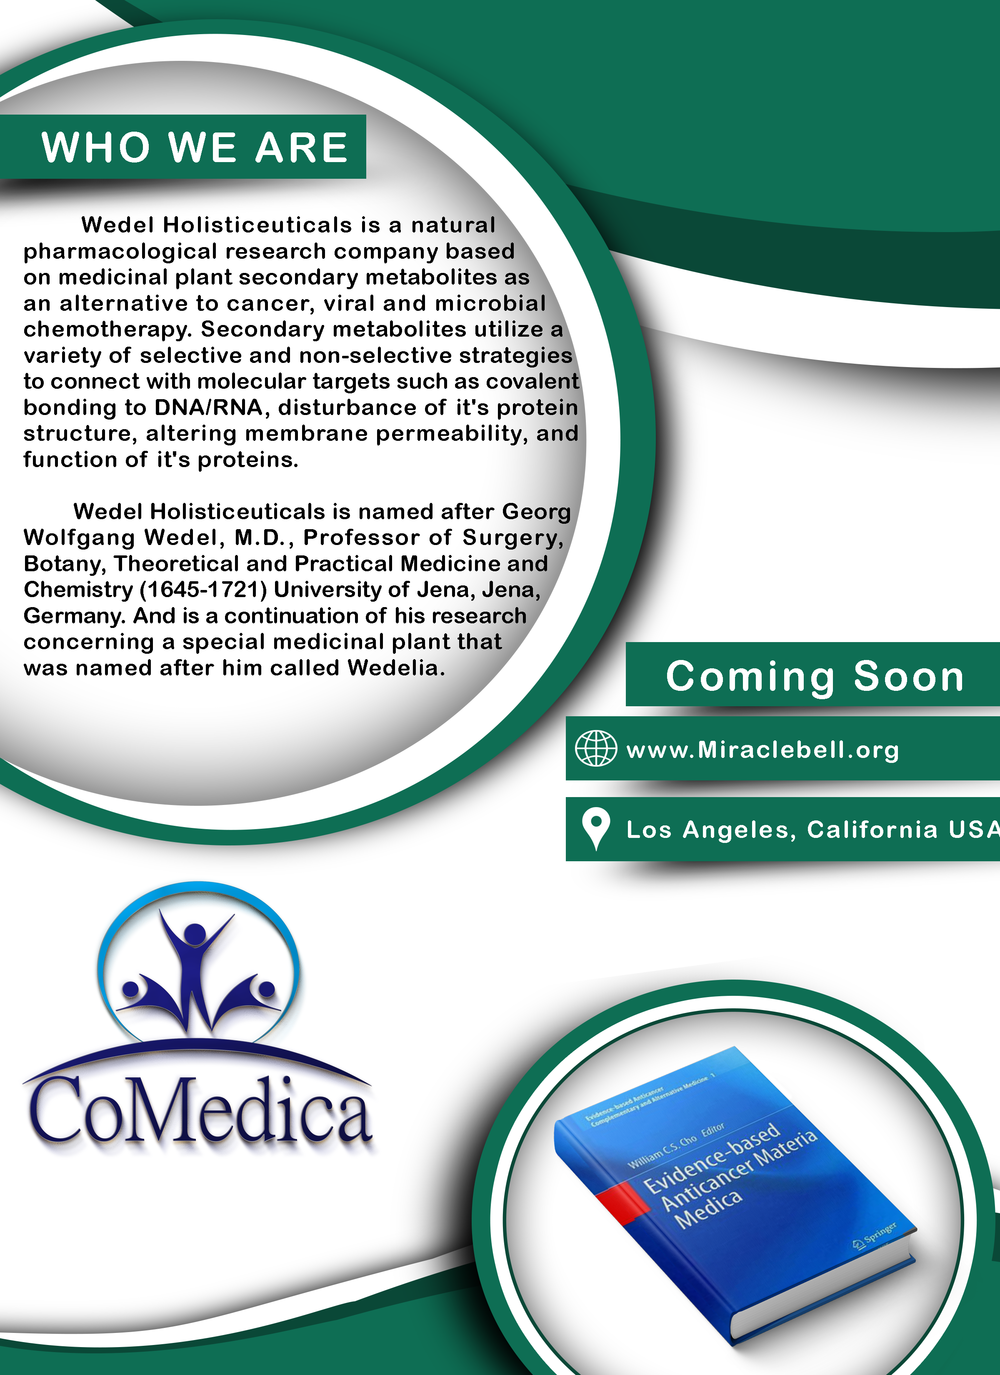 Wedel_Holisticeuticals_Green_flyer (3) (2019_03_24 02_42_49 UTC).png